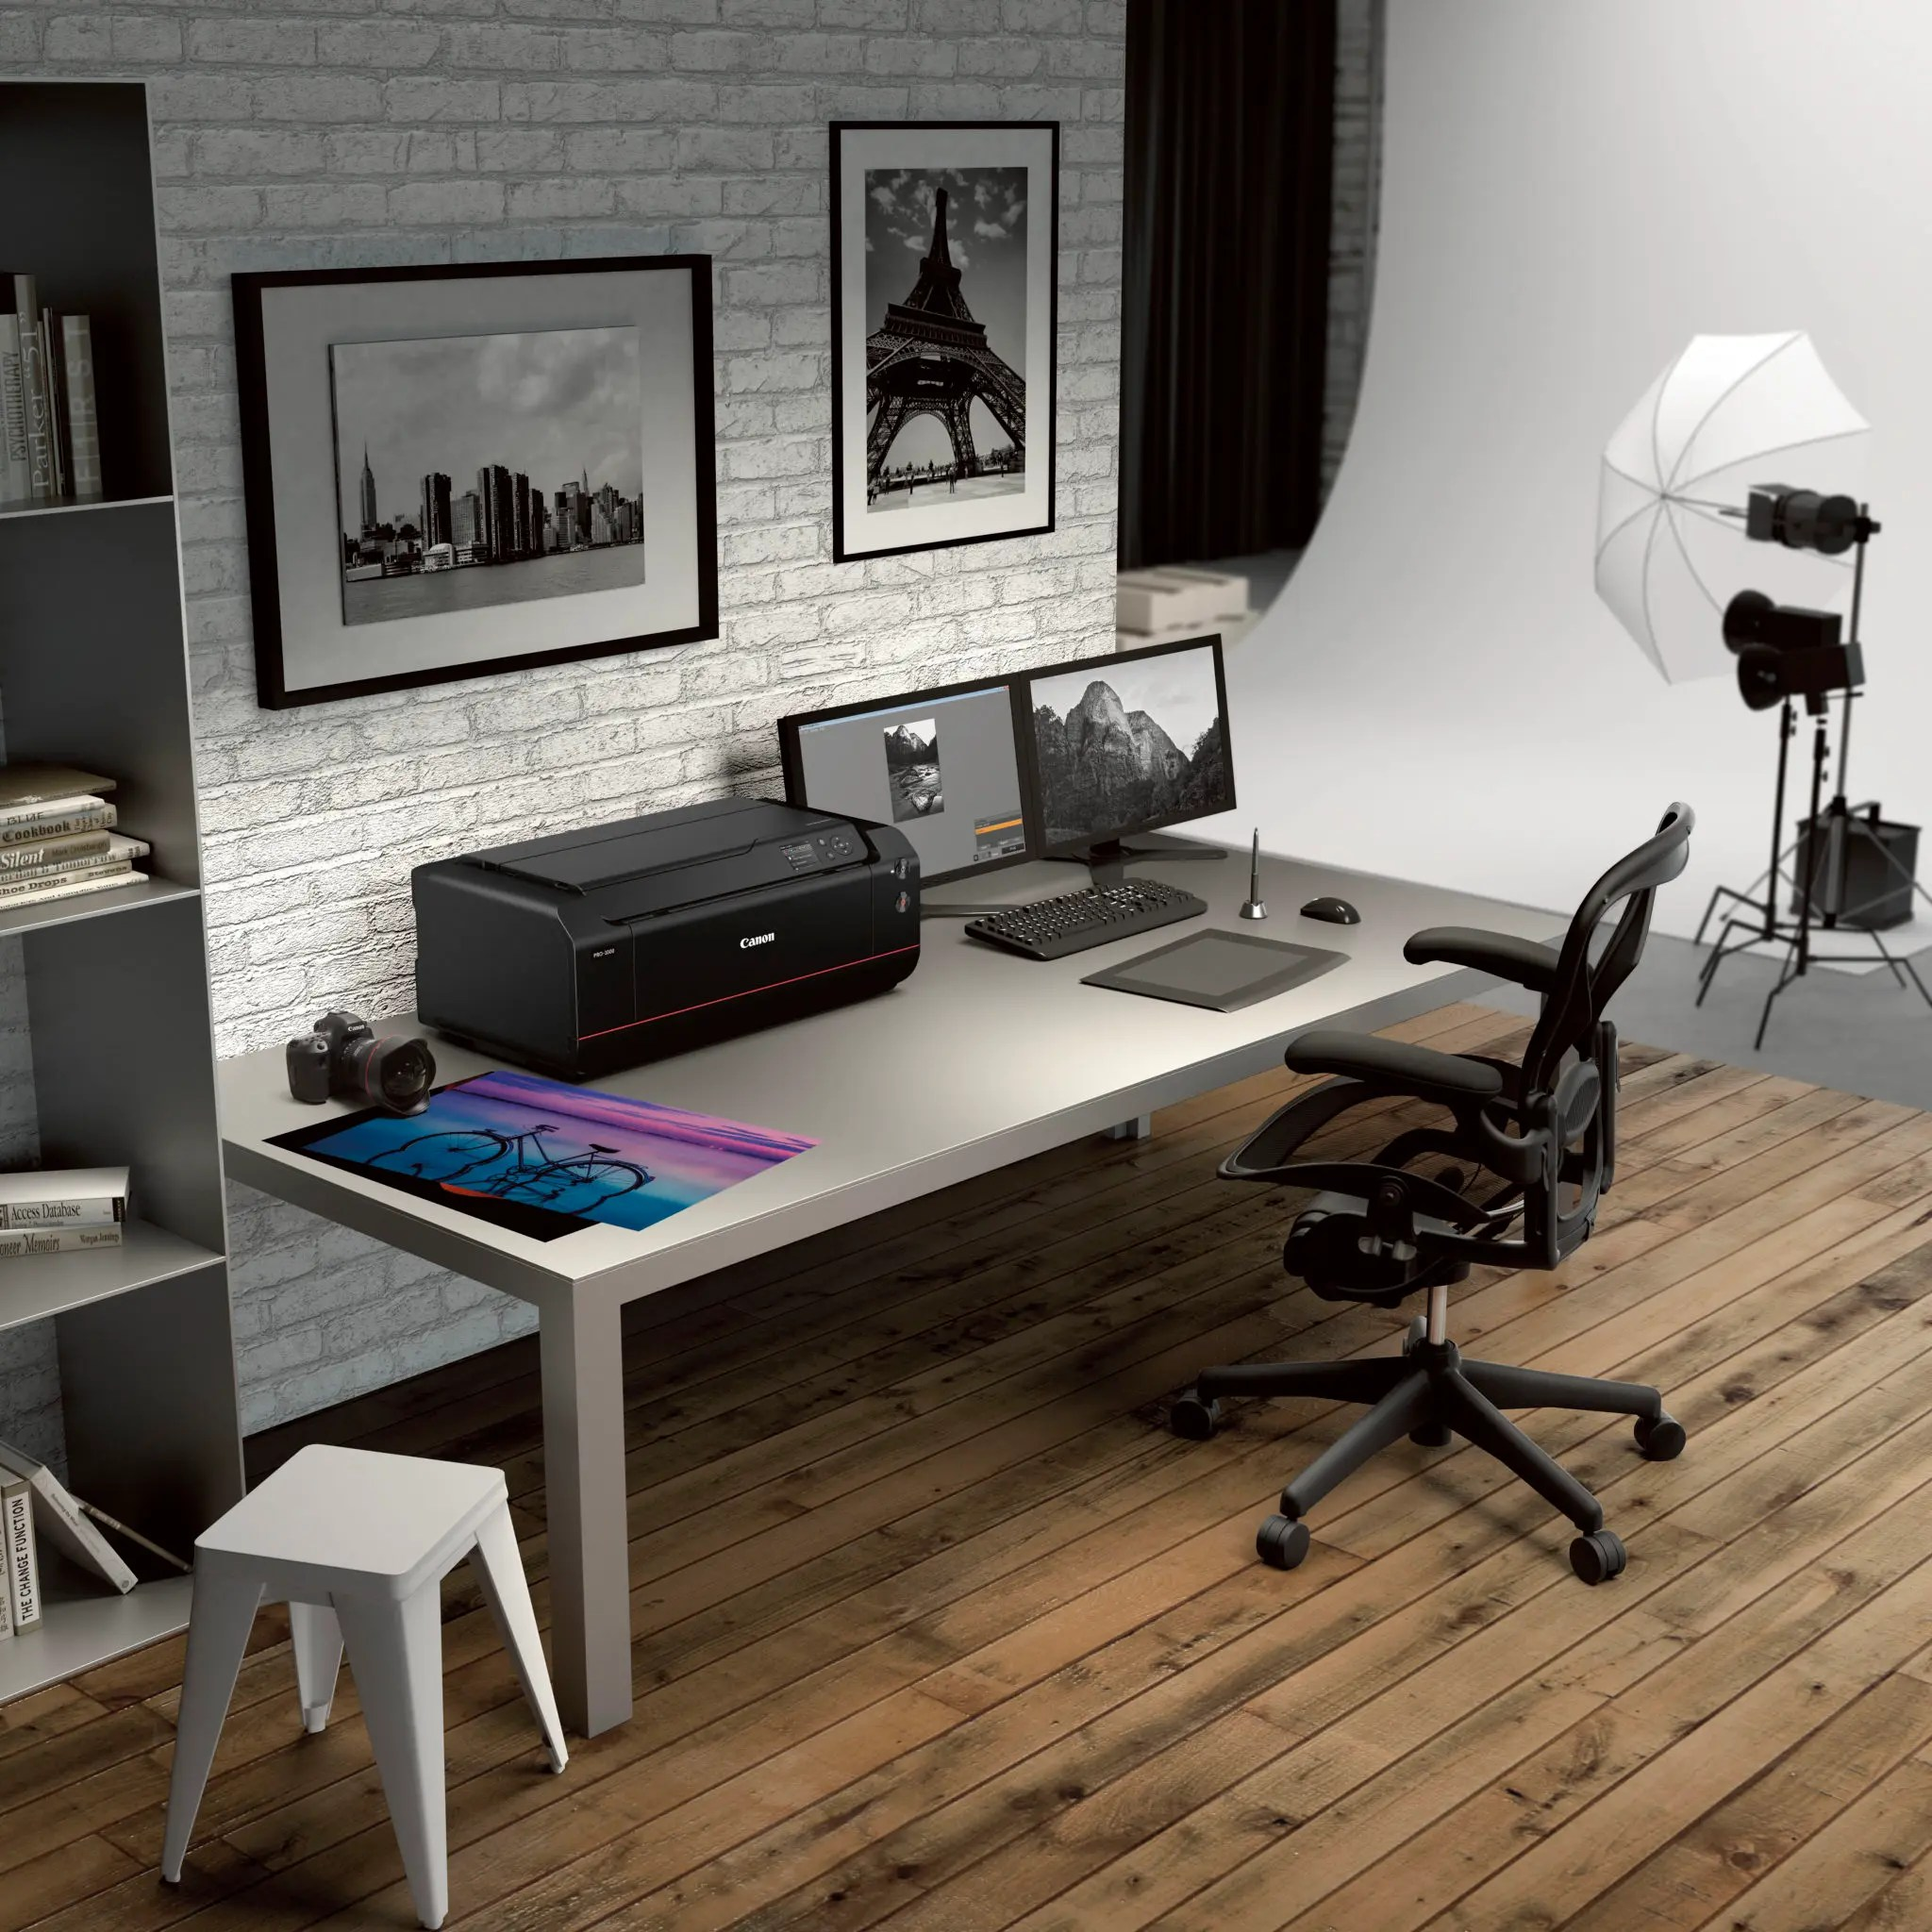 The Canon Imageprograf Pro 1000 Is A Very High End Printer